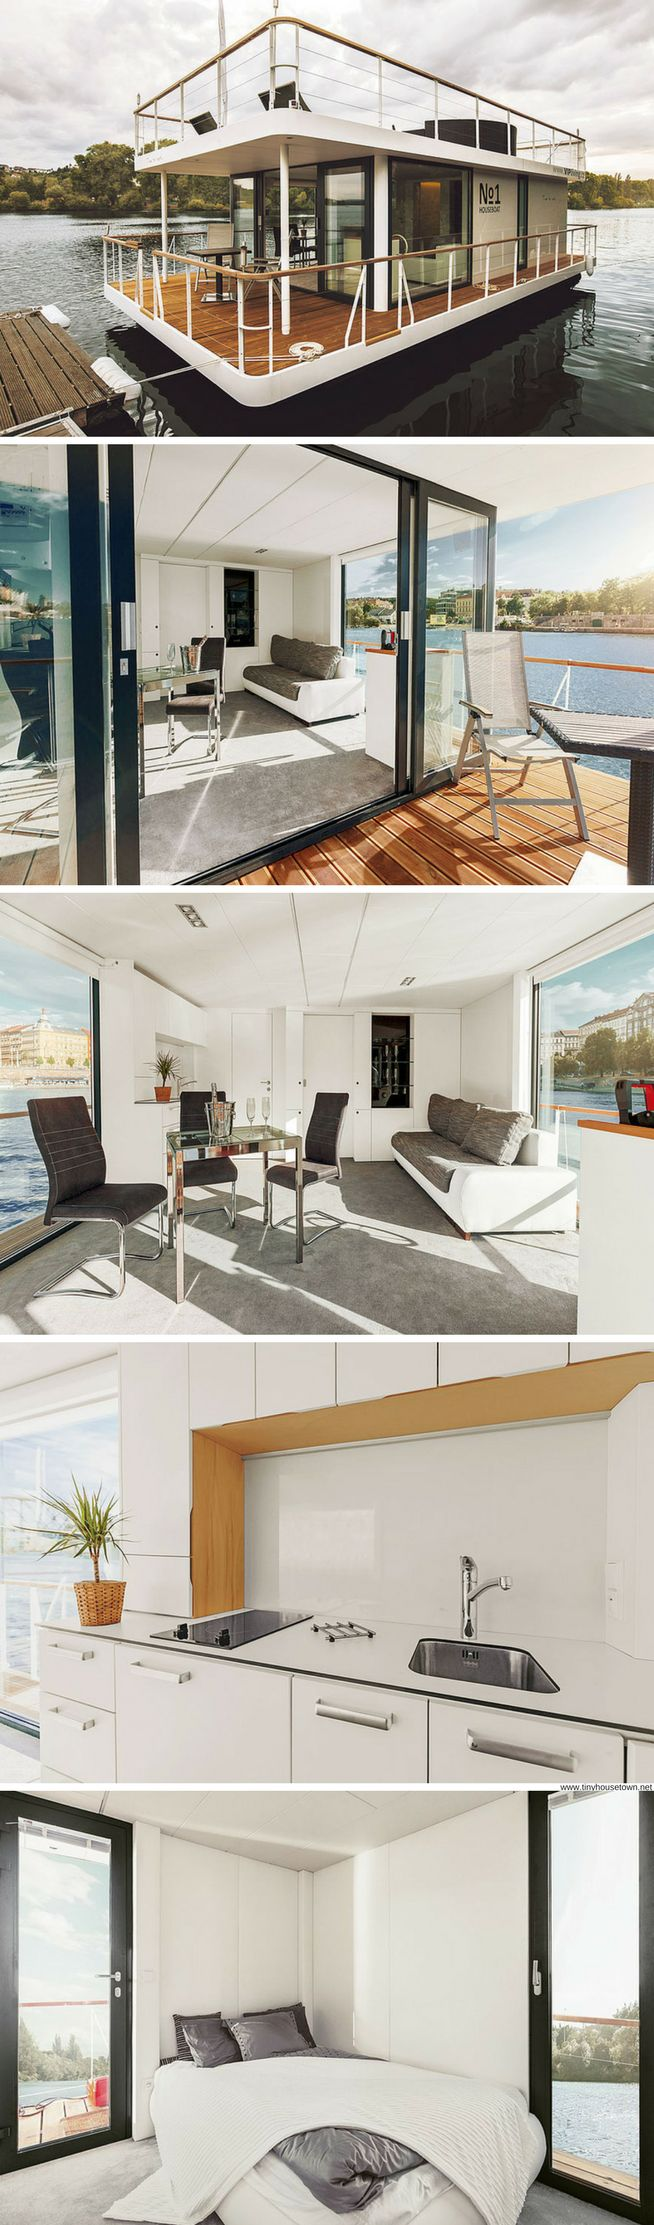 The No. 1 Living 40 Houseboat